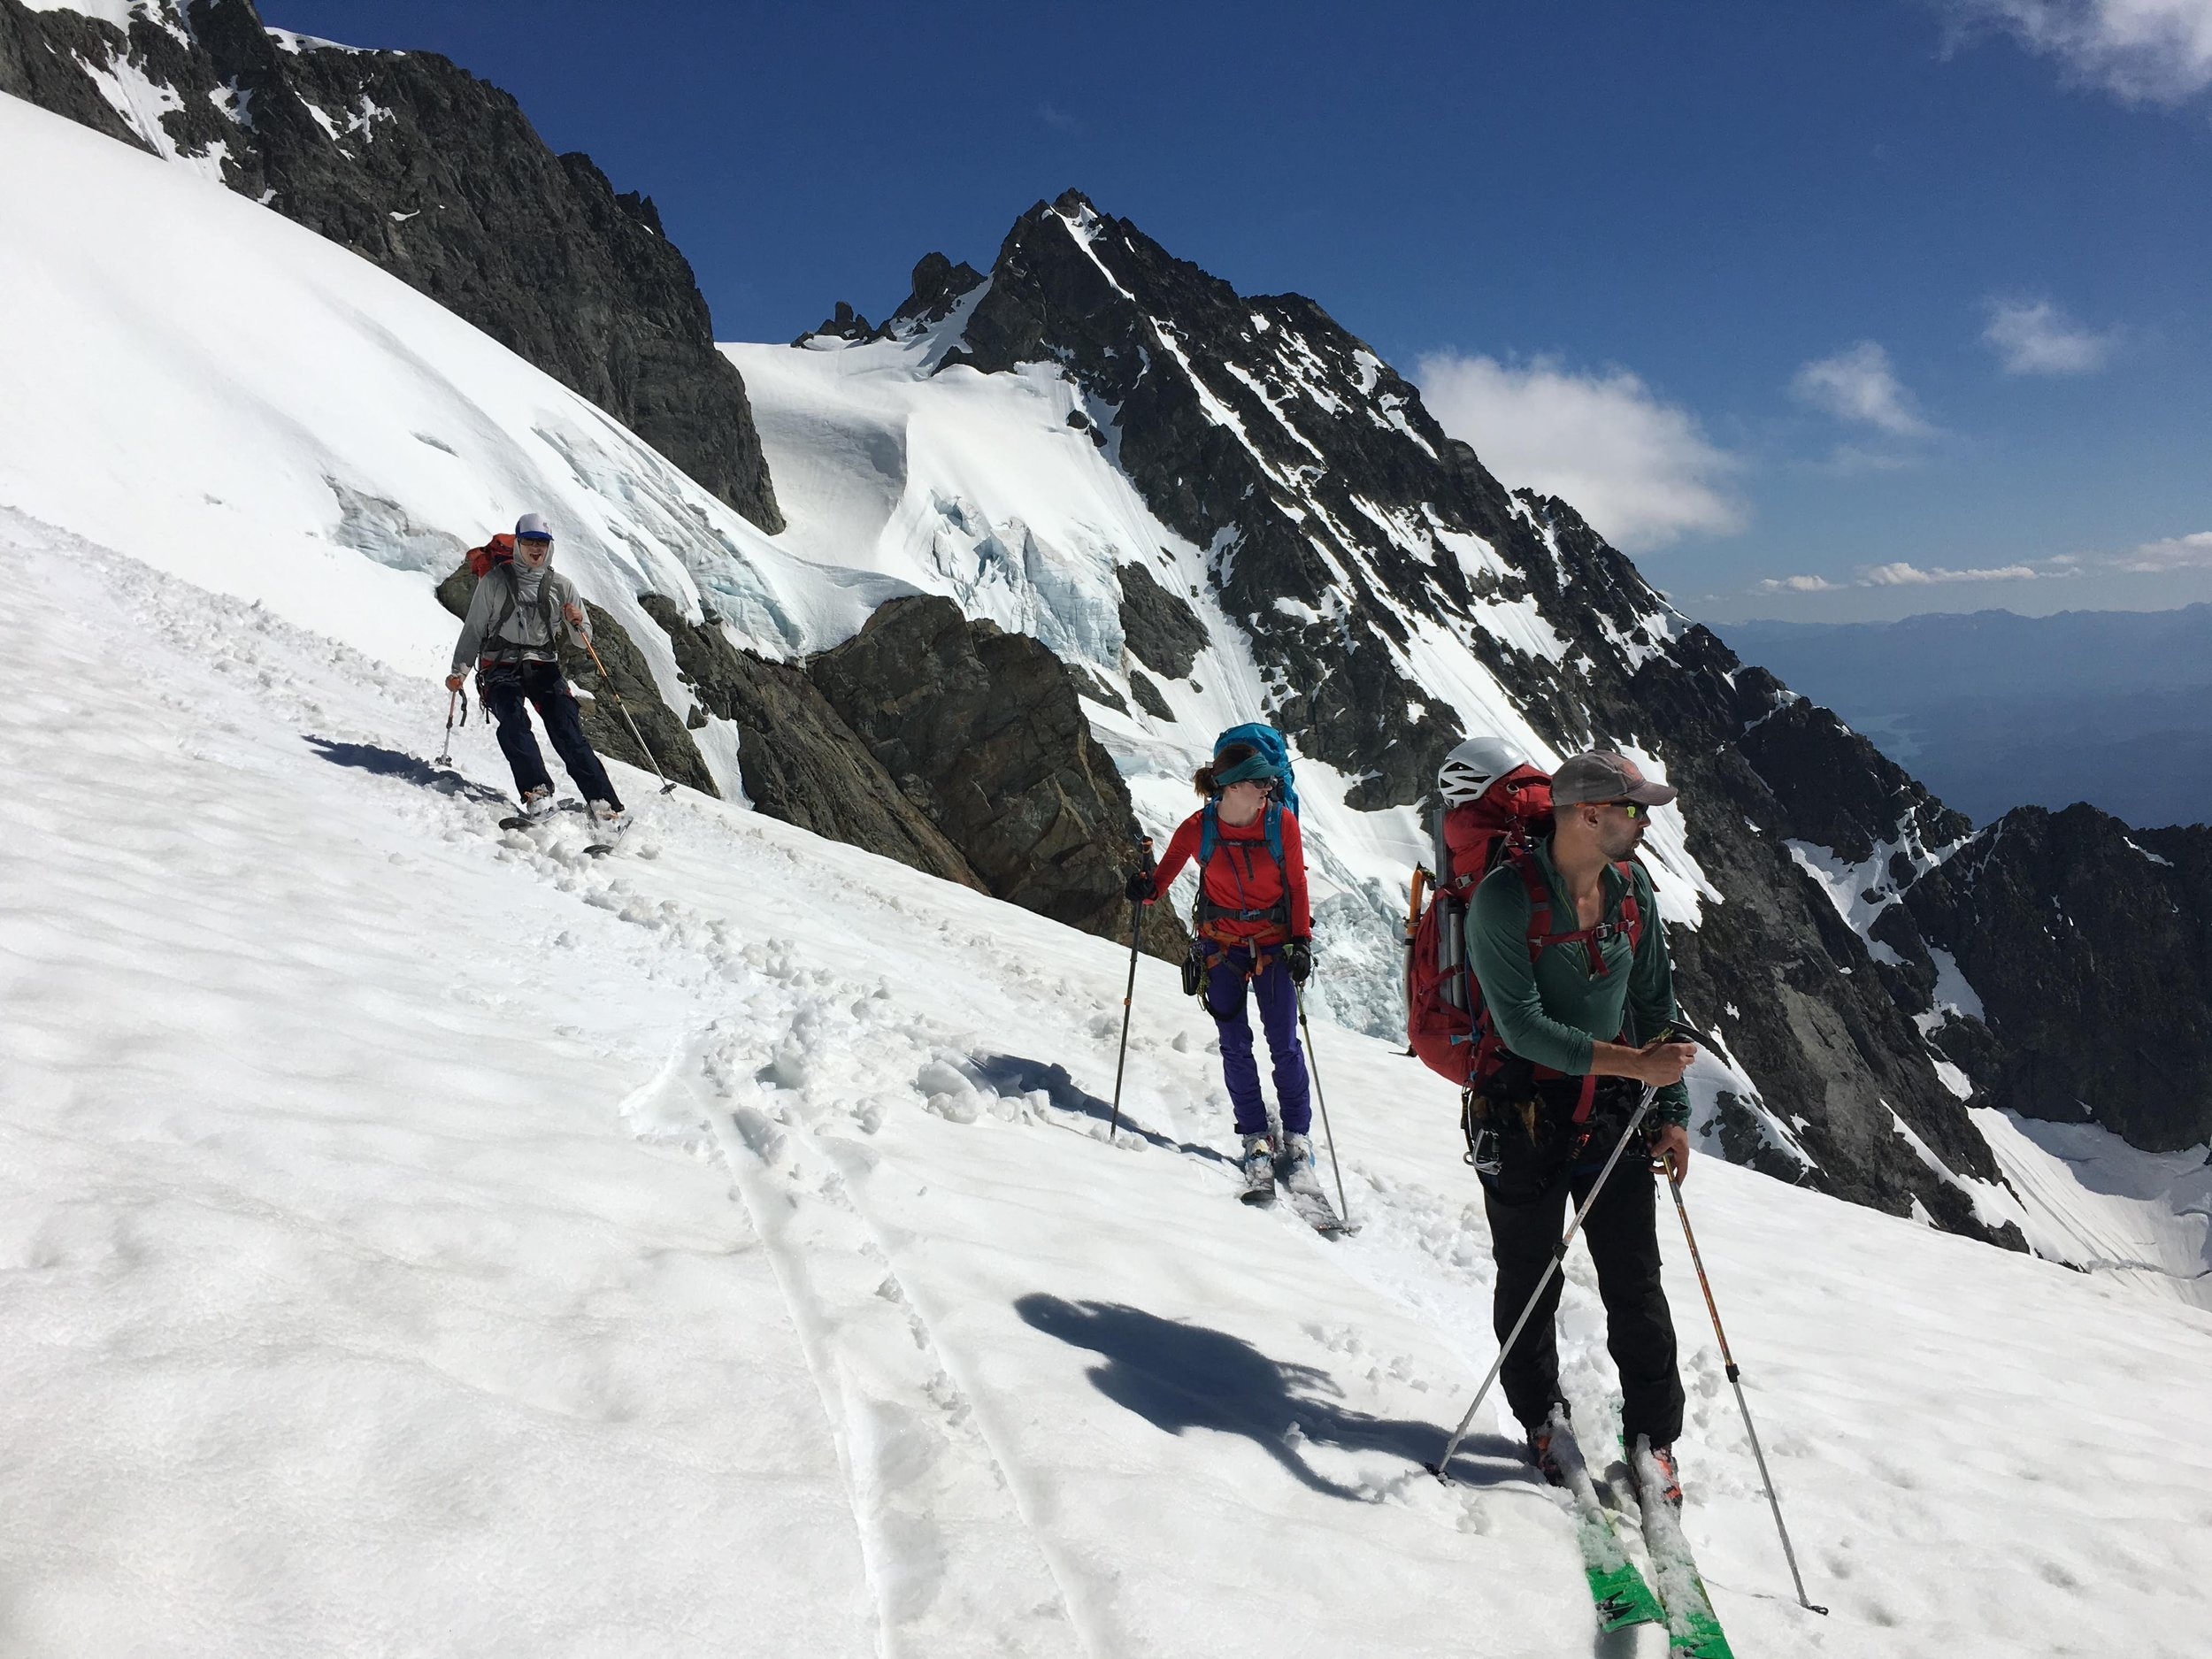 Skiing down the Upper Curtis Glacier on our way to the White Salmon